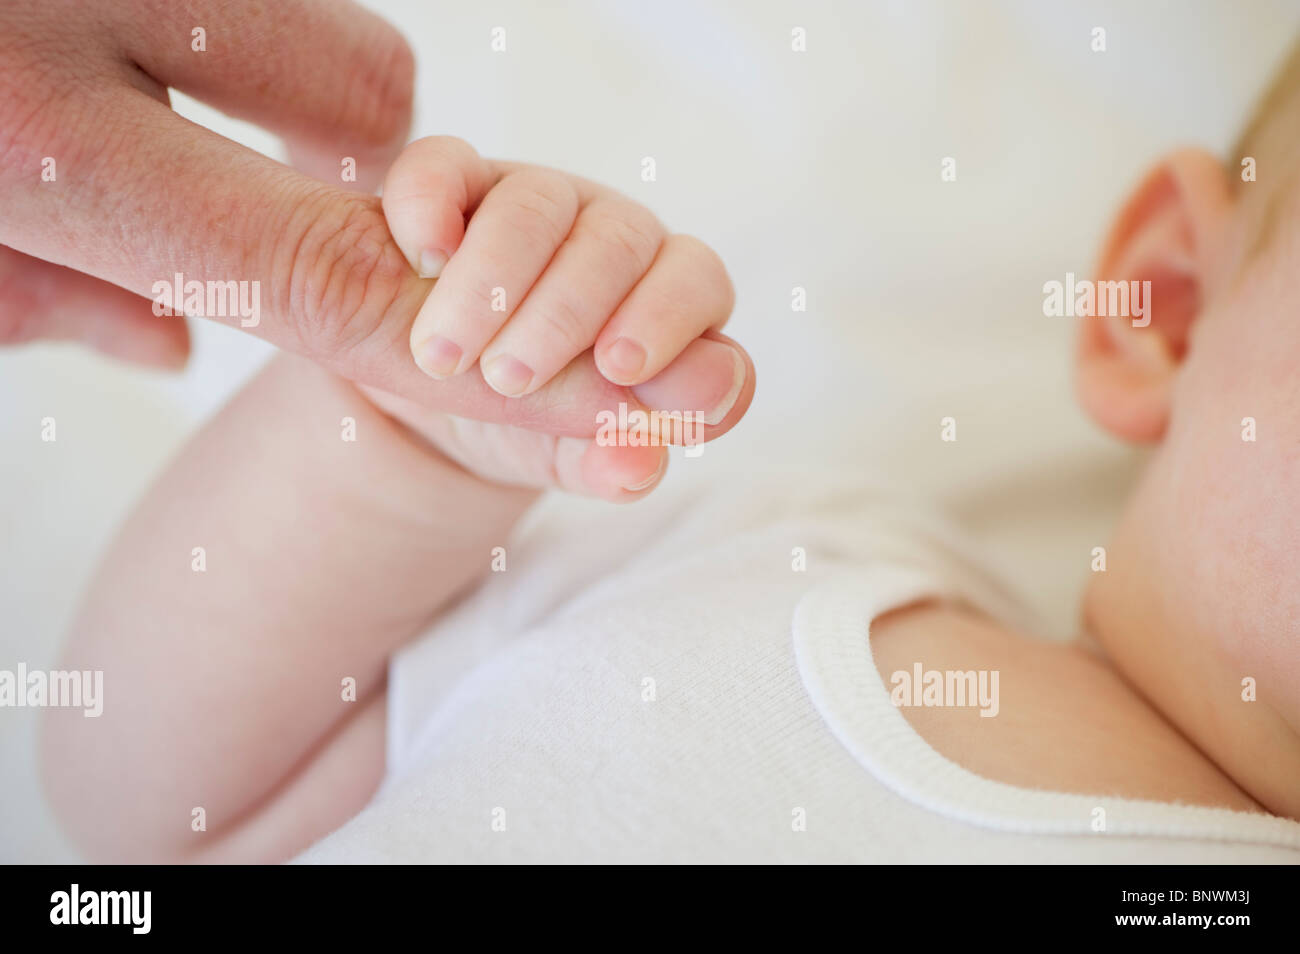 Infant holding onto adult's finger - Stock Image